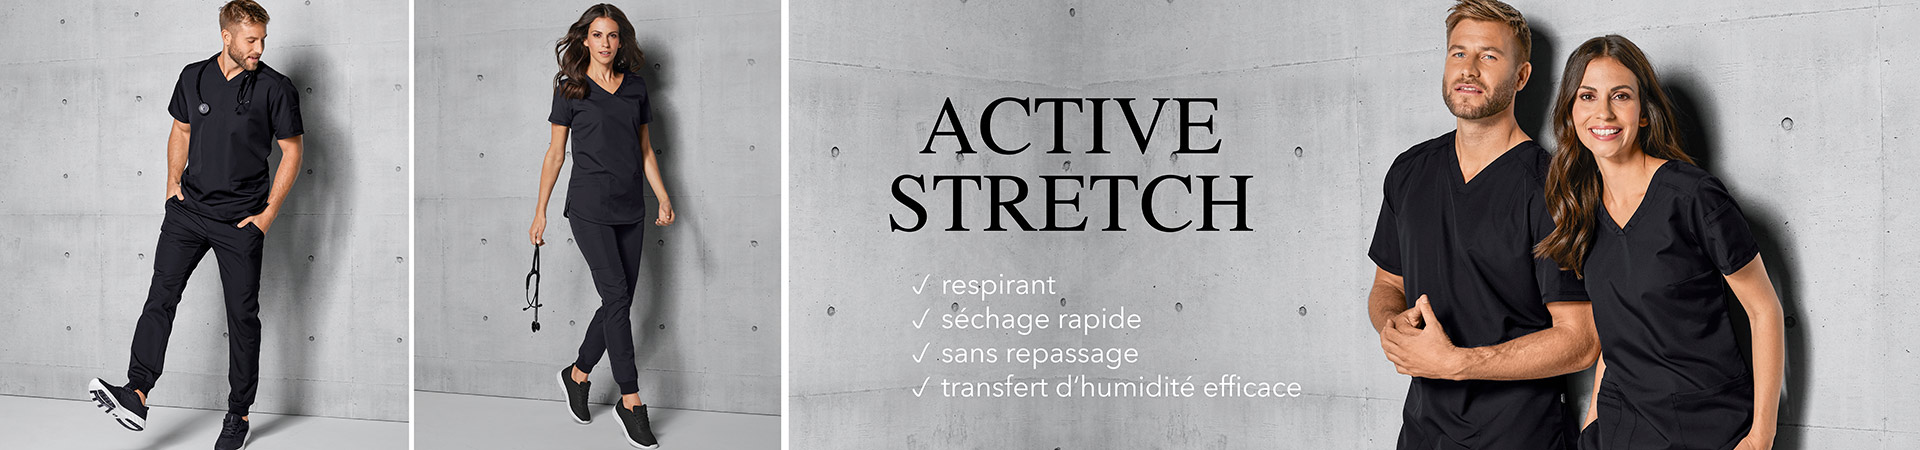 Tenues-d-equipe - Active Stretch